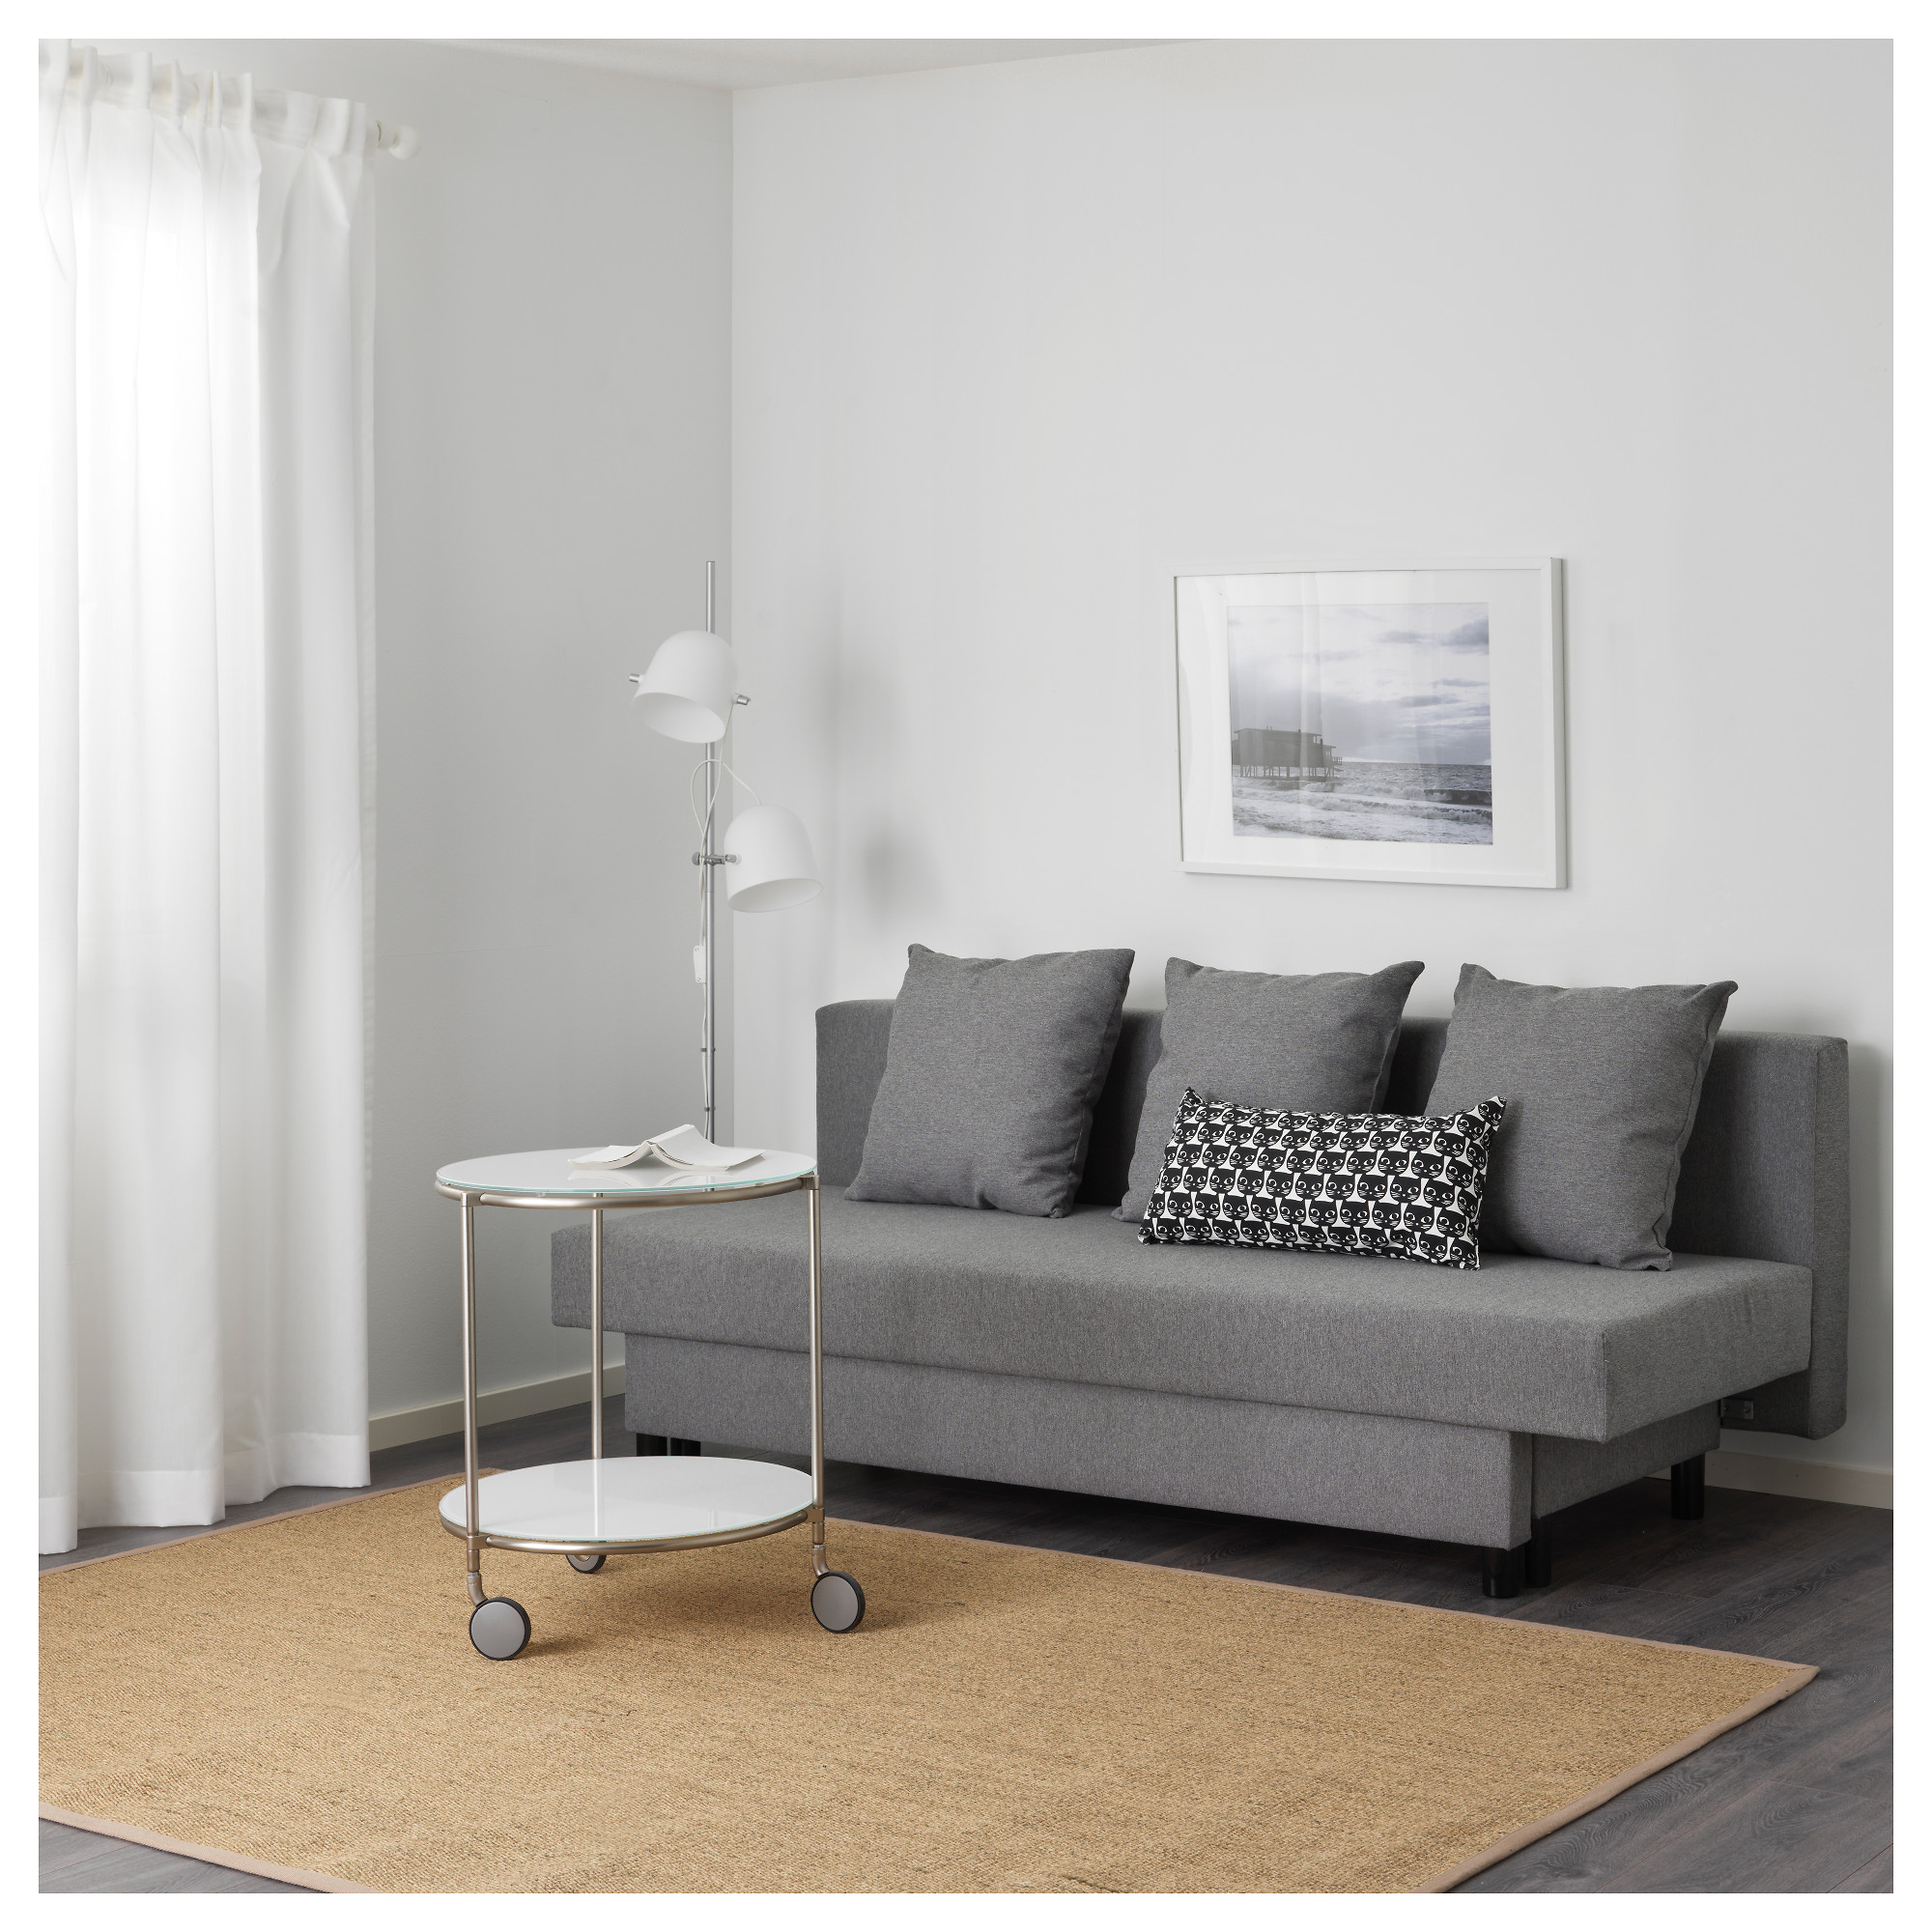 ASARUM Three-seat sofa-bed - IKEA